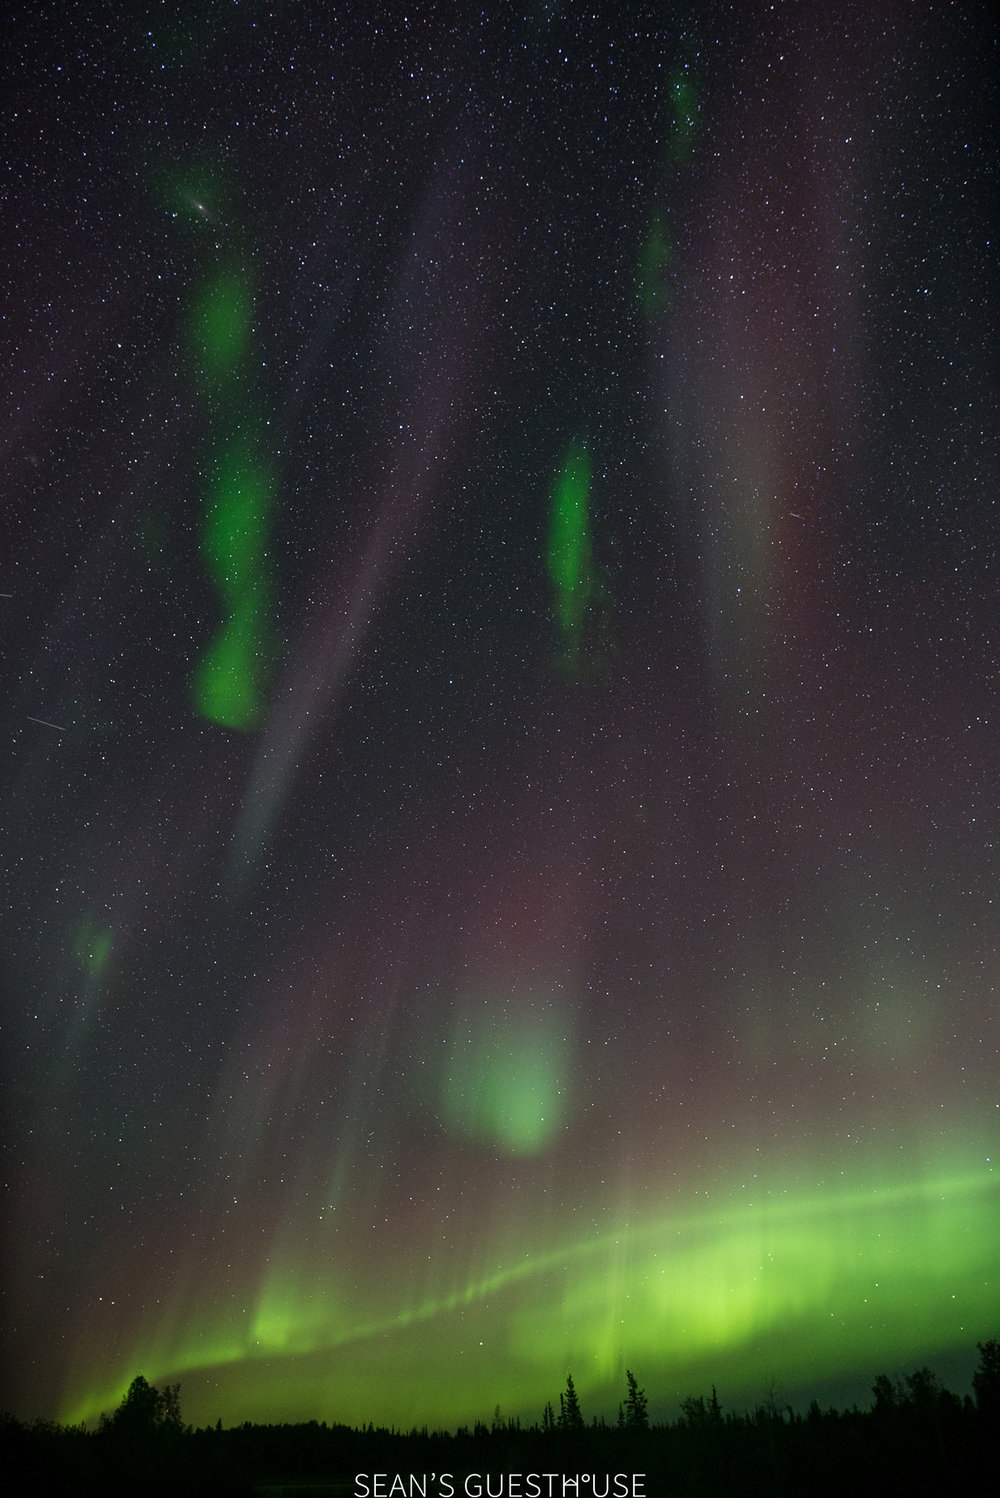 Sean's Guesthouse - Yellowknife - High Speed Solar Wind Stream - 5.jpg